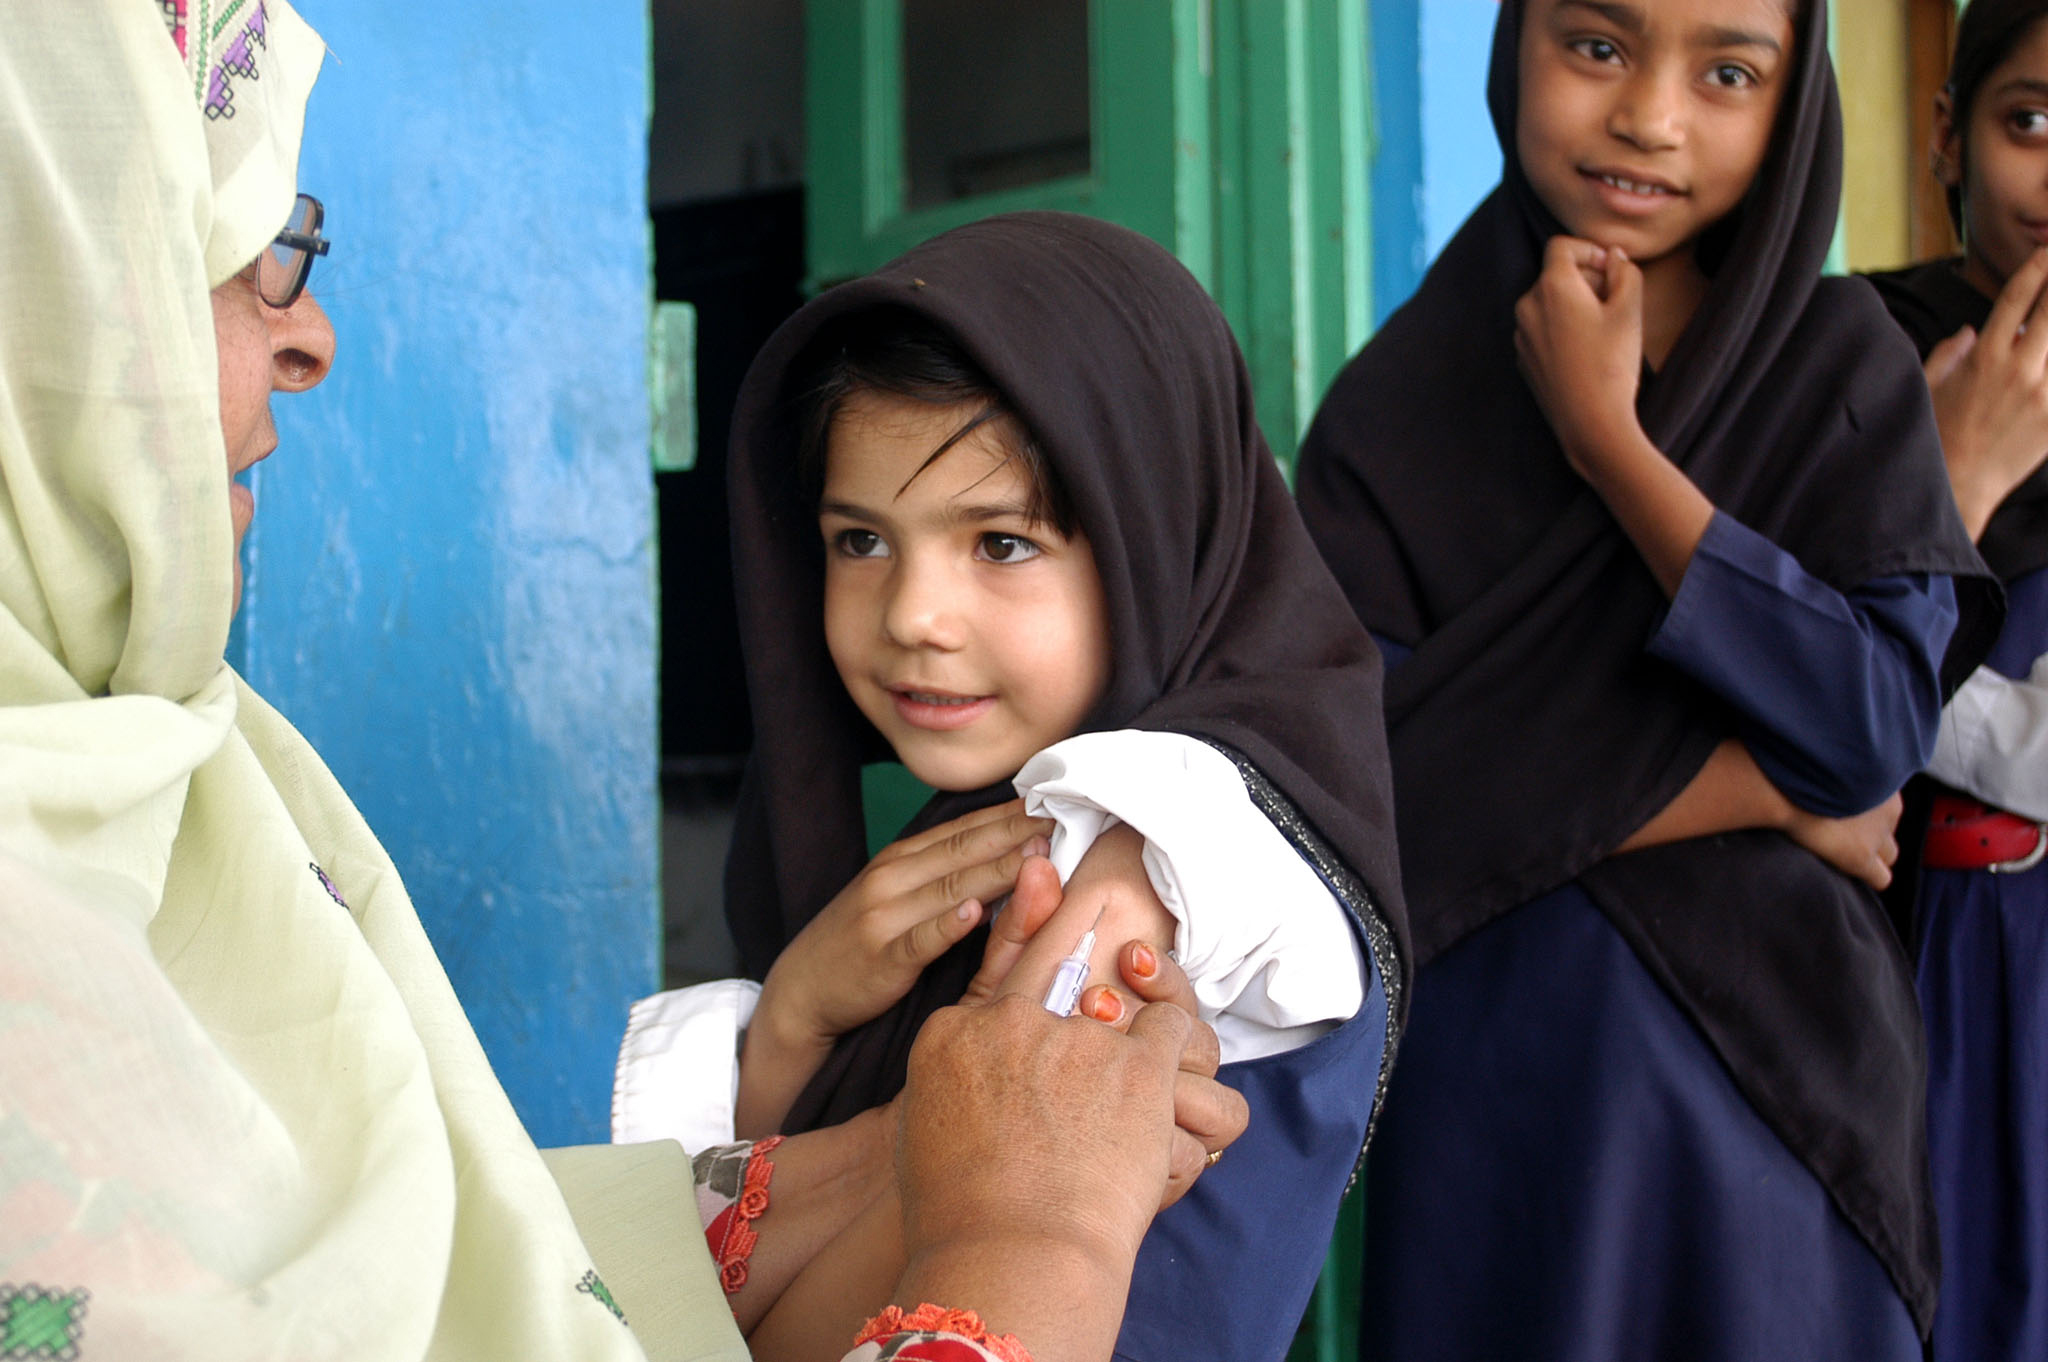 An estimated 21,000 children a year die of measles each year in Pakistan - making vaccination efforts all the more important.